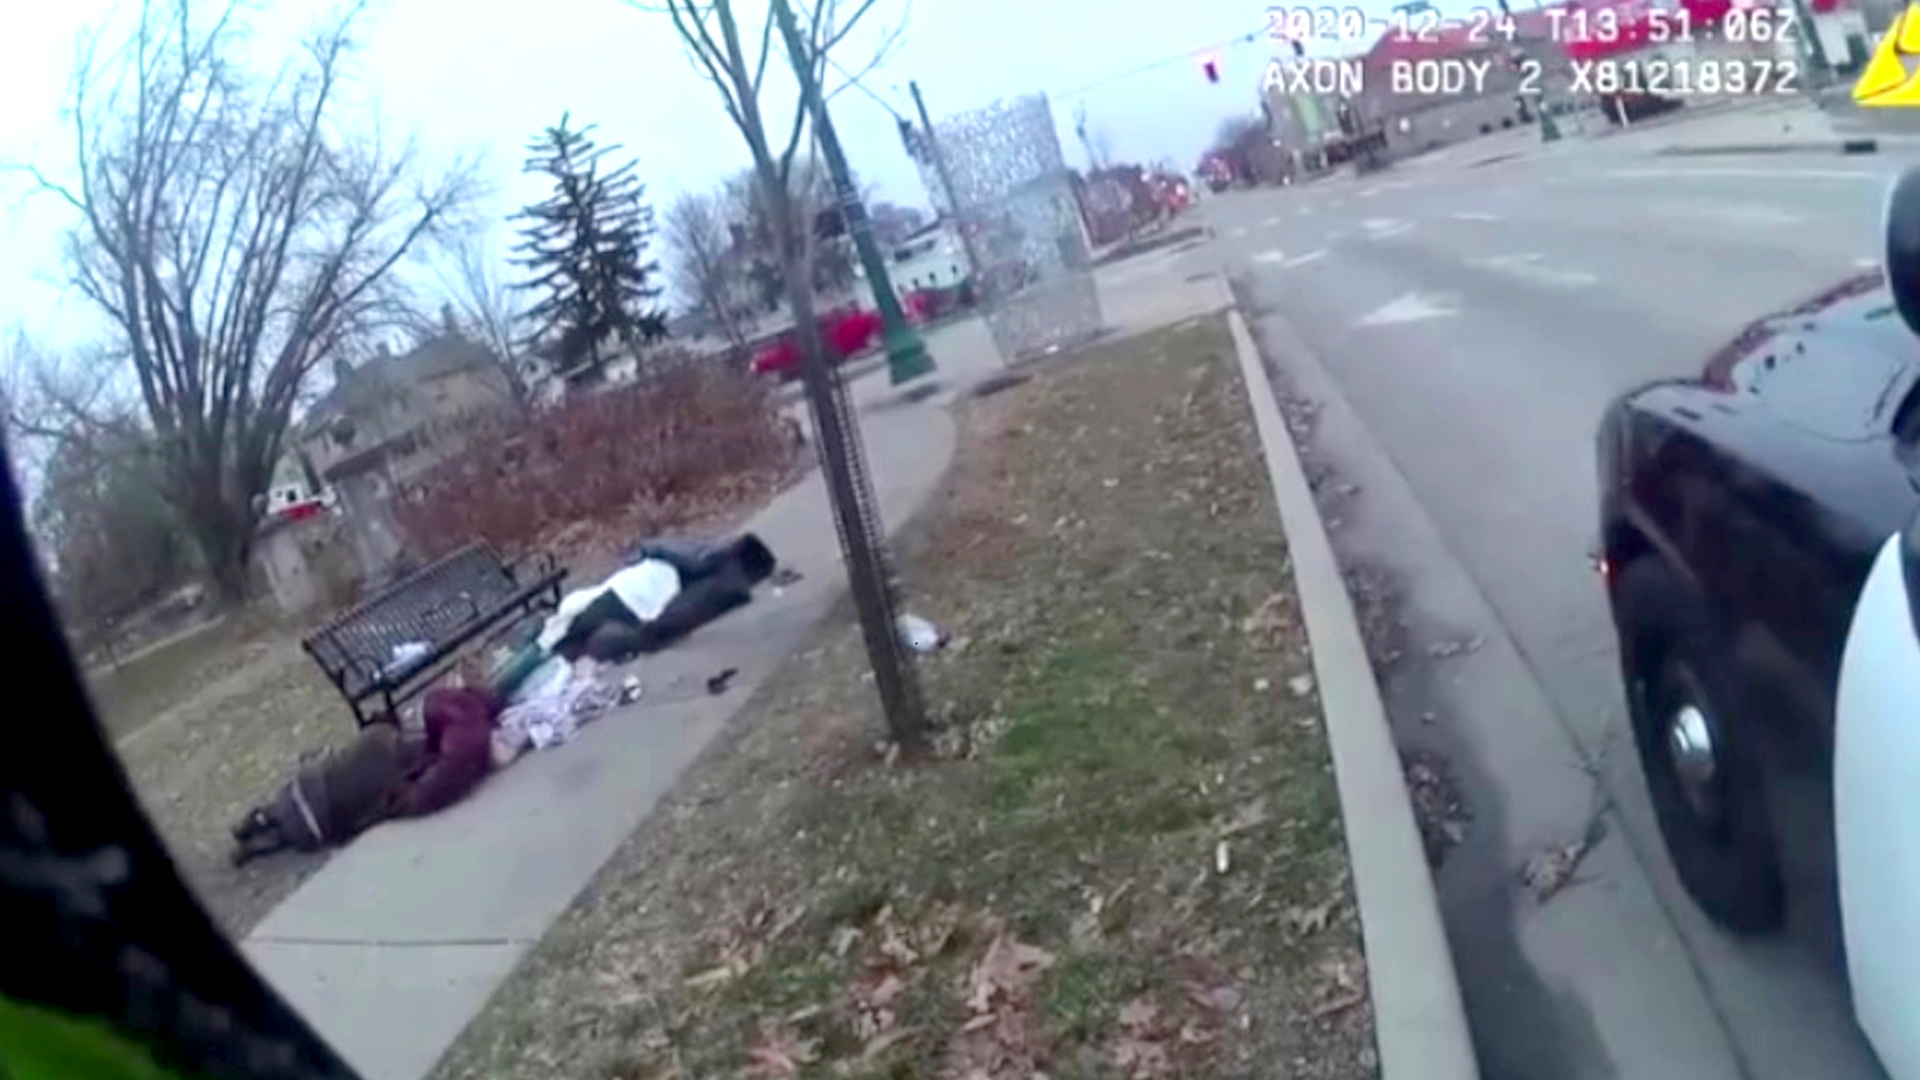 VIDEO: Homeless Man Sleeping On Sidewalk Found Dead Hours After Officer Checks Up On Him